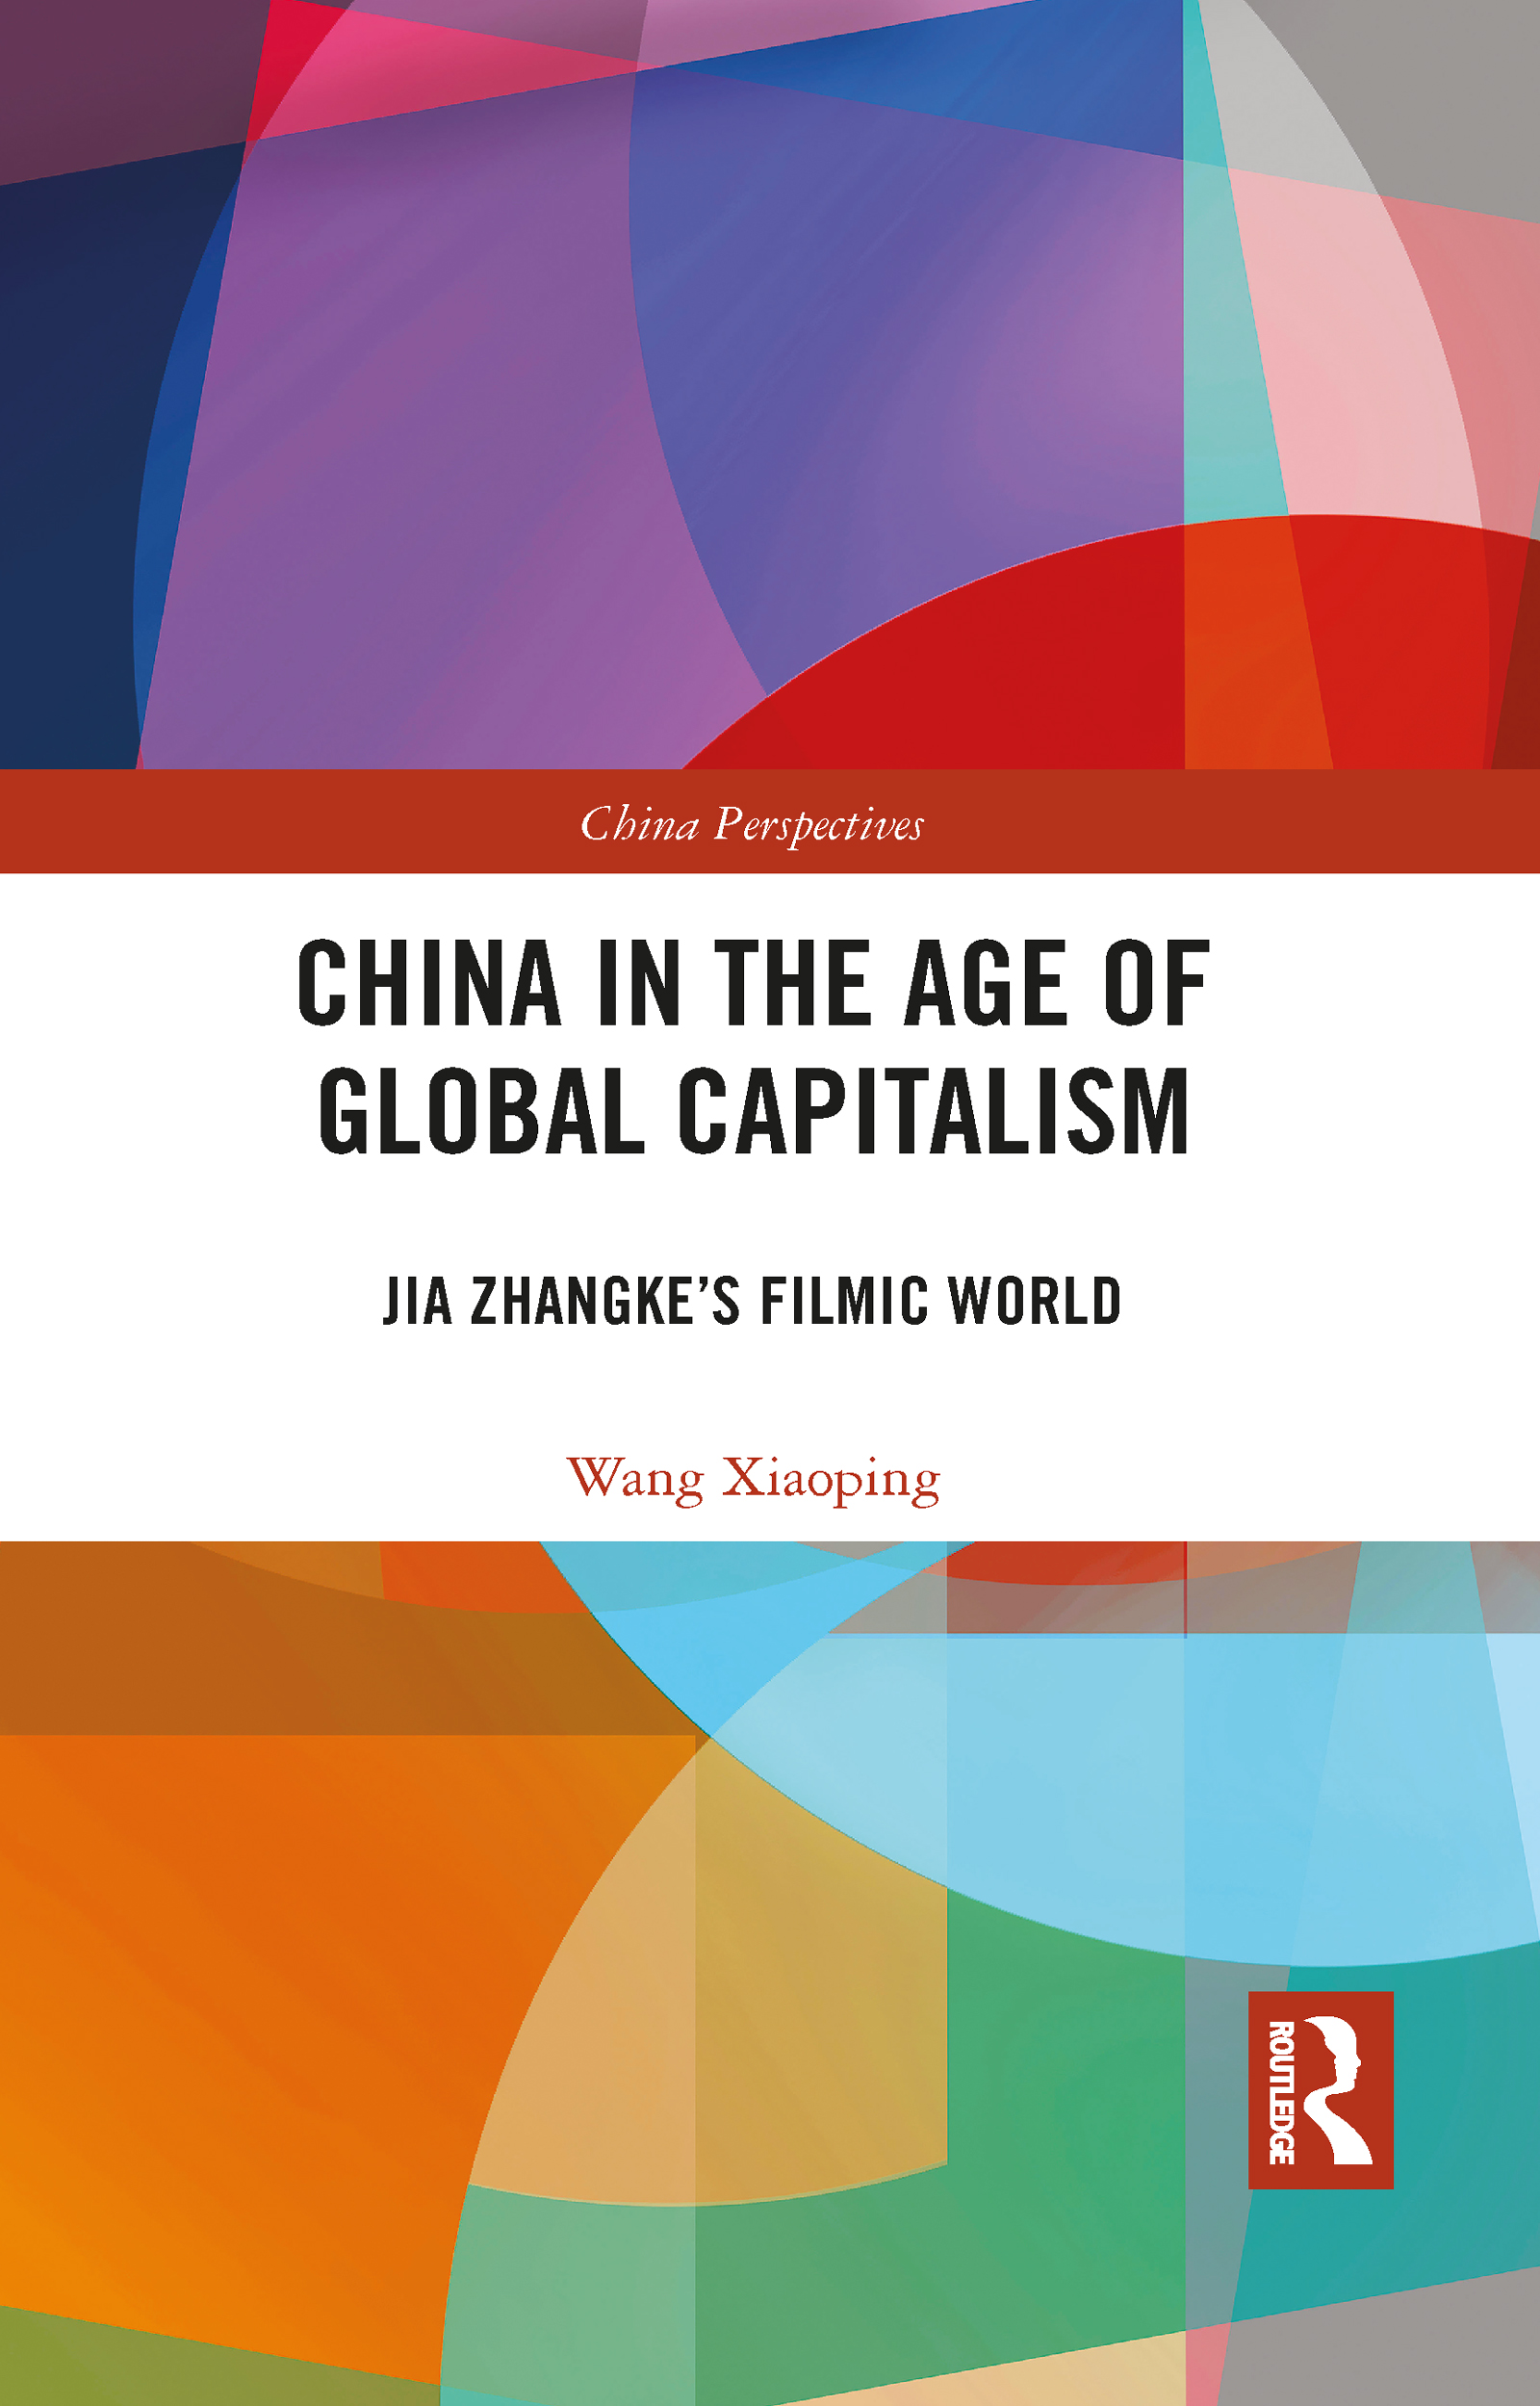 China in the Age of Global Capitalism